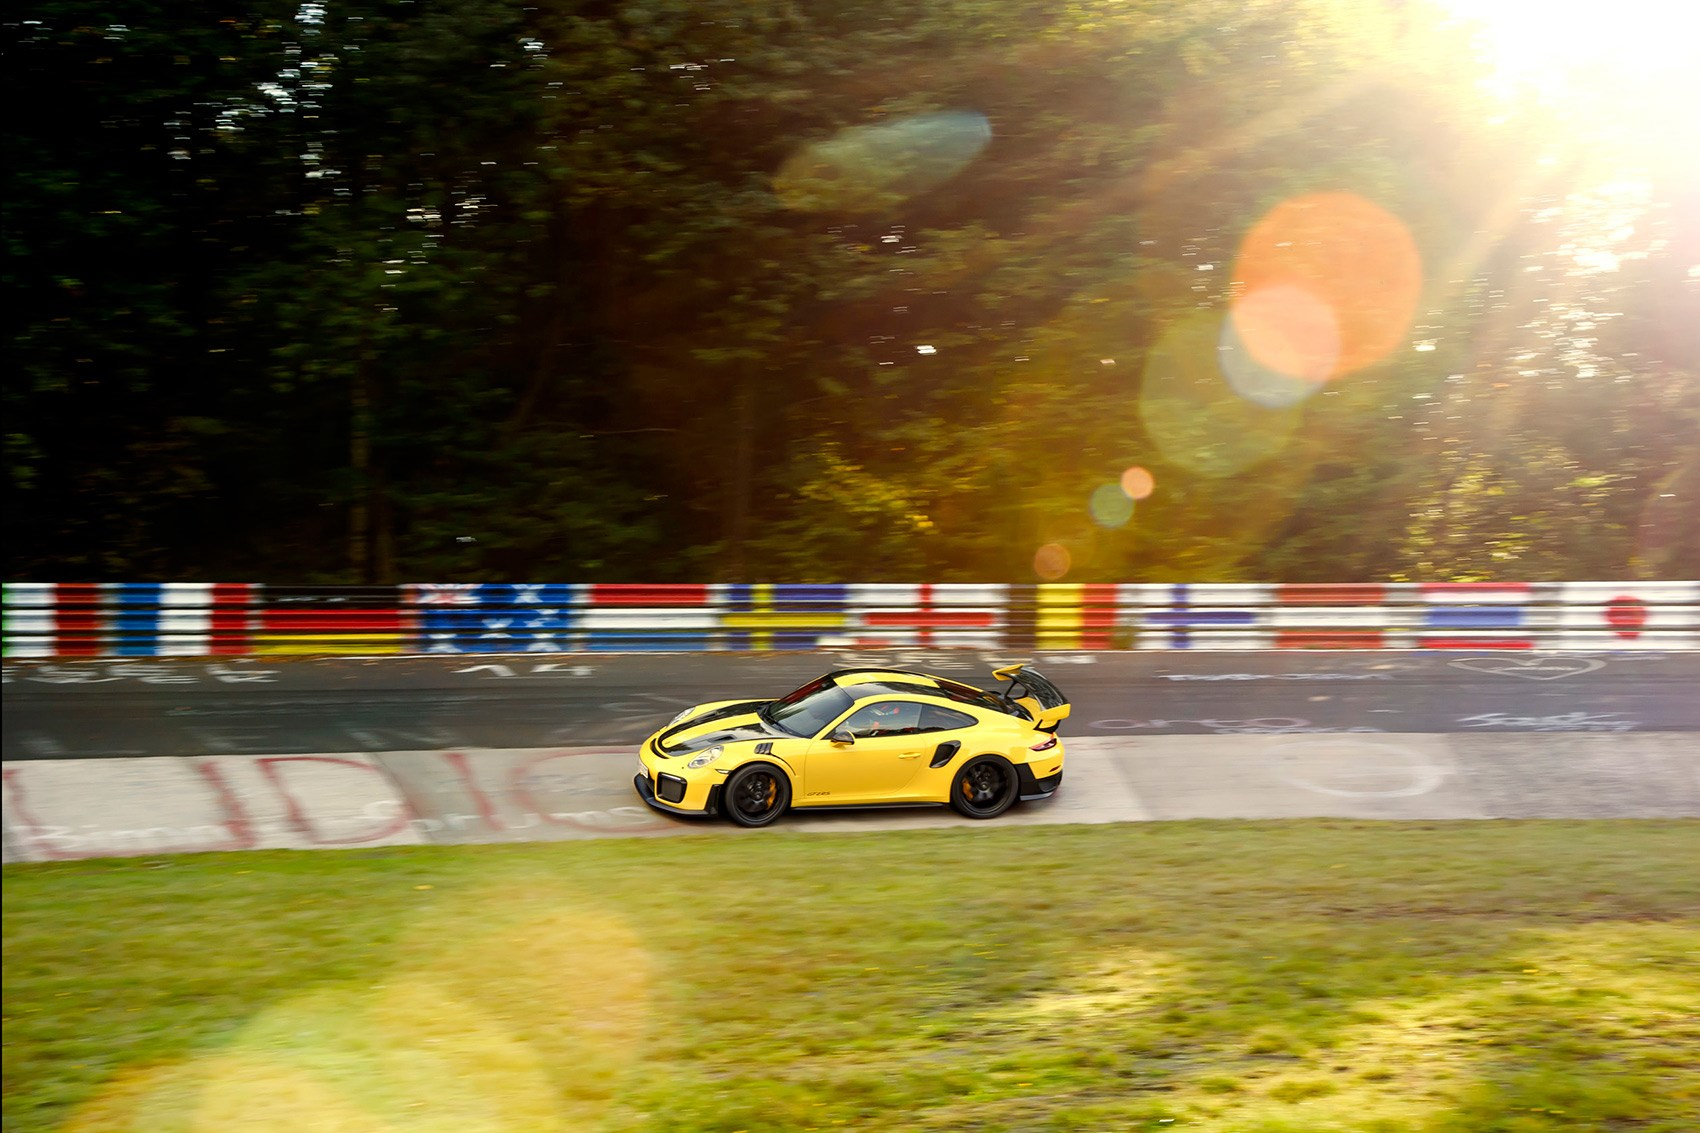 Porsche 911 GT2 RS sets record 6:47.3 Nurburgring lap time